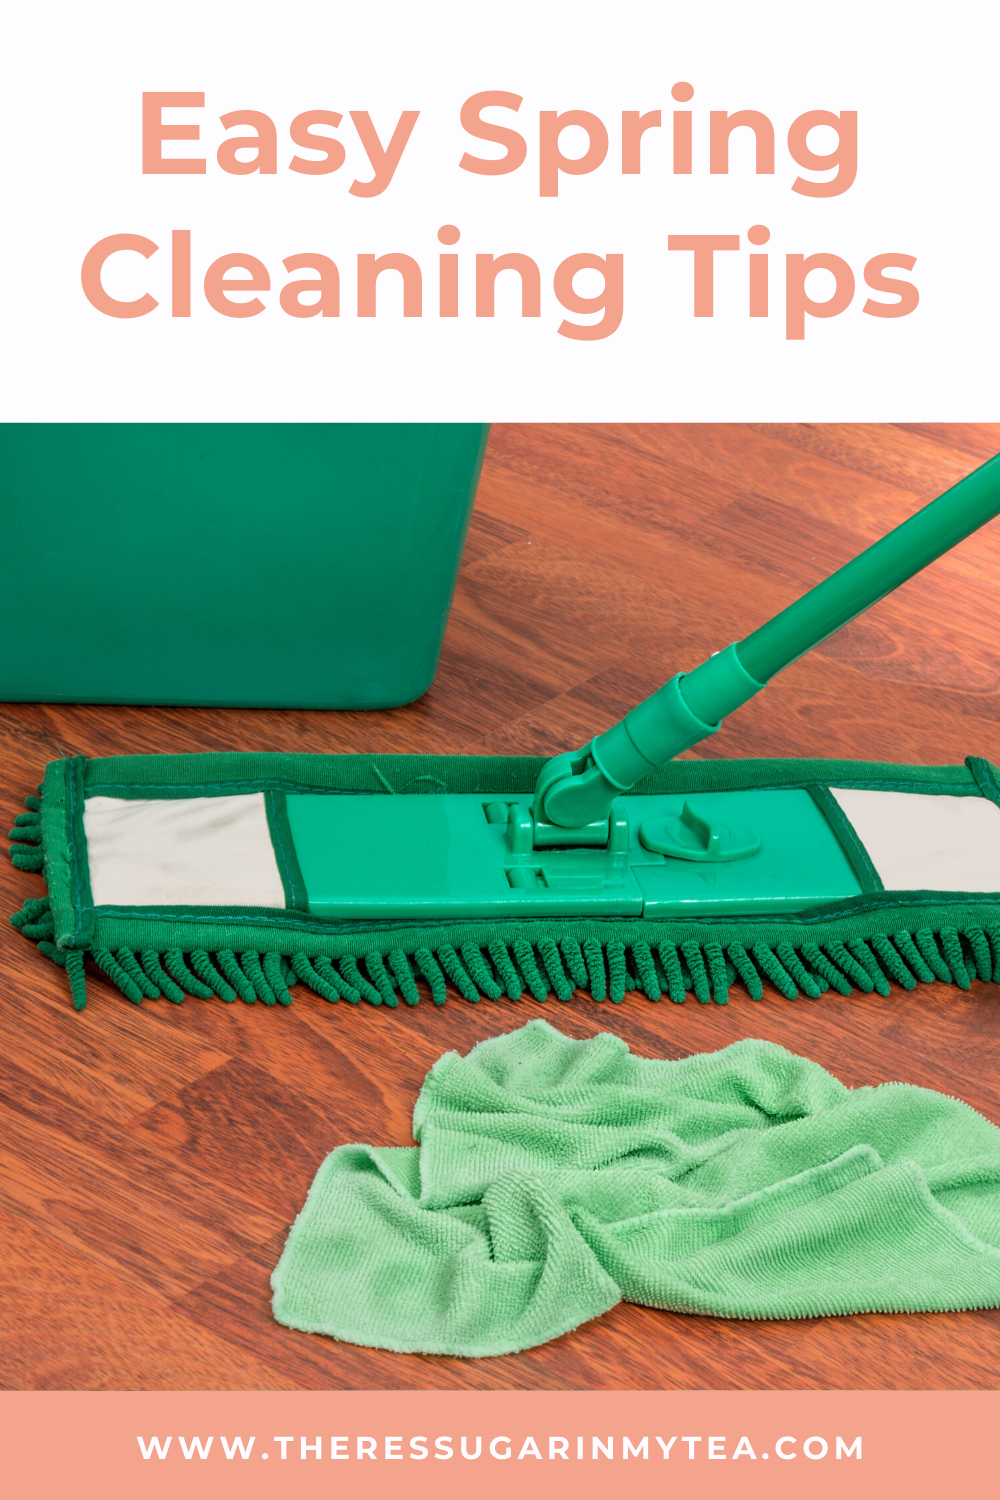 Click to view! #clean #cleaning #cleanhome #springclean #springcleaning #cleaningtip #cleaningtips #cleaningidea #cleaningideas #easycleaningtip #easycleaningtips #simplecleaningtip #simplecleaningtips #easycleaningidea #easycleaningideas #simplesleaningidea #simplecleaningideas #howtoclean #howtokeepthehomeclean #howtokeepyourhomeclean #howtokeepyourhouseclean #cleaningthehouse #cleaningthehome #cleanhouse #declutter #decluttering #howtodeclutter #declutteringtips #declutteringideas #sparkjoy